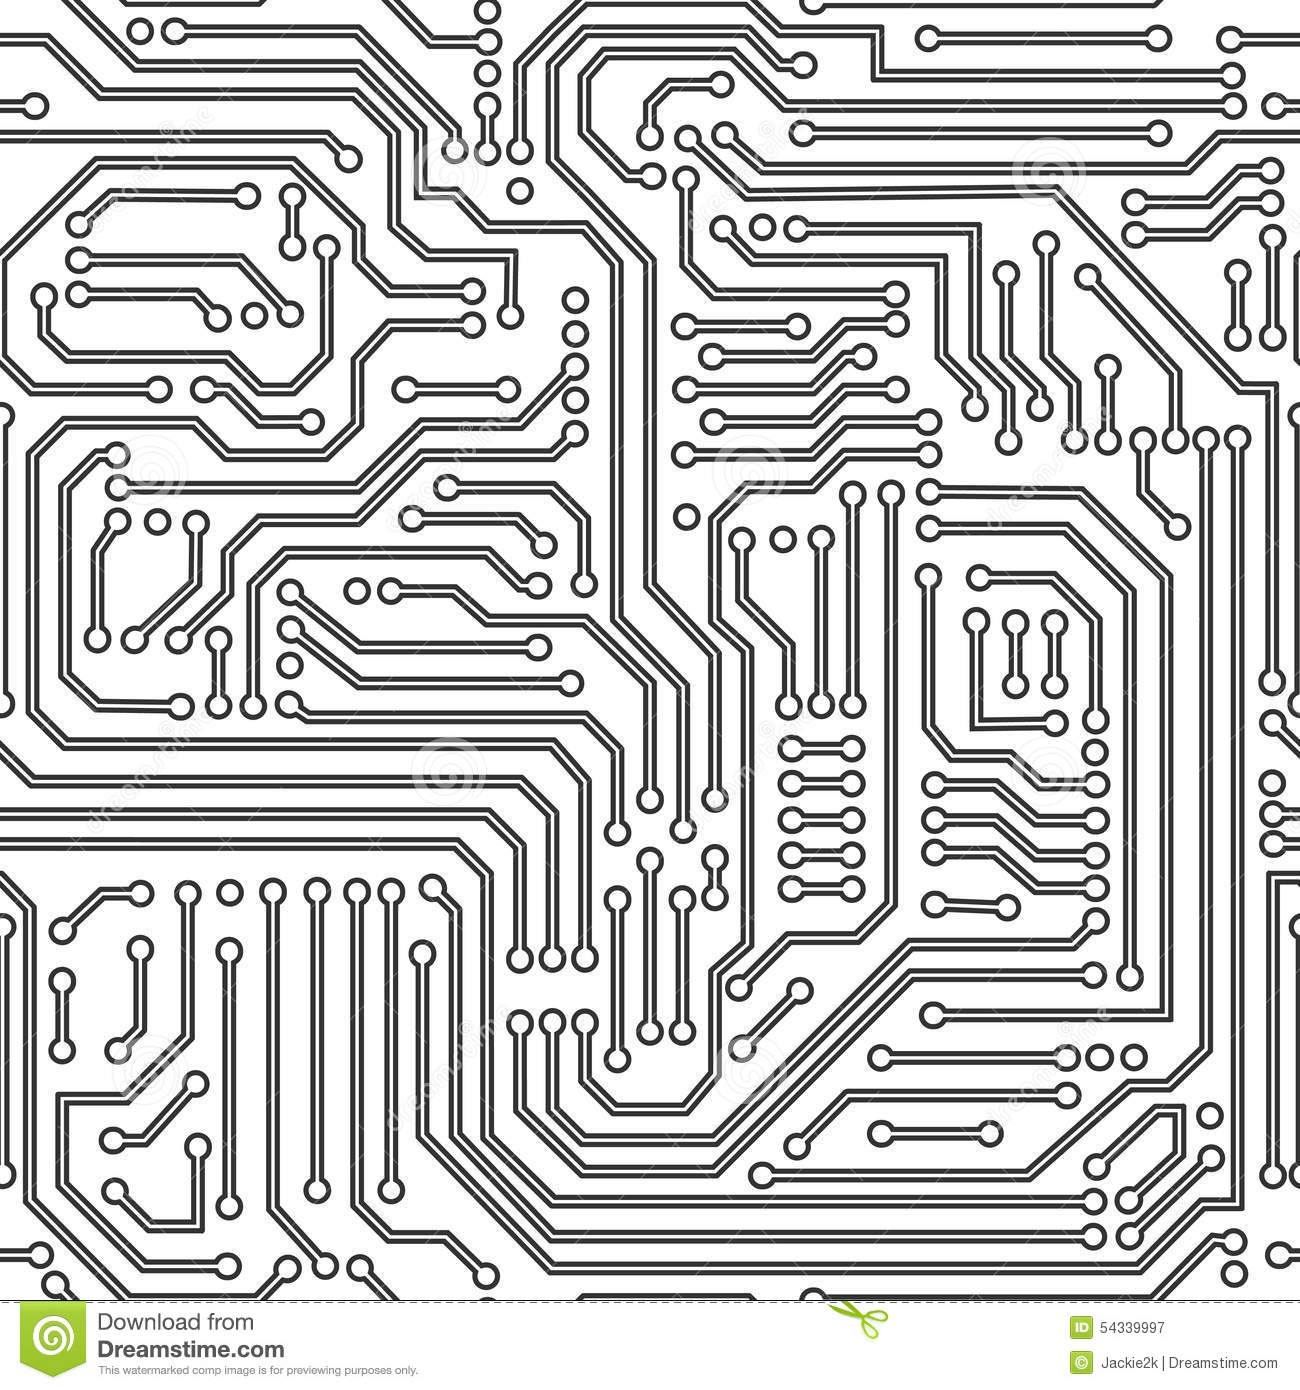 Black And White Circuit Board Clipart.